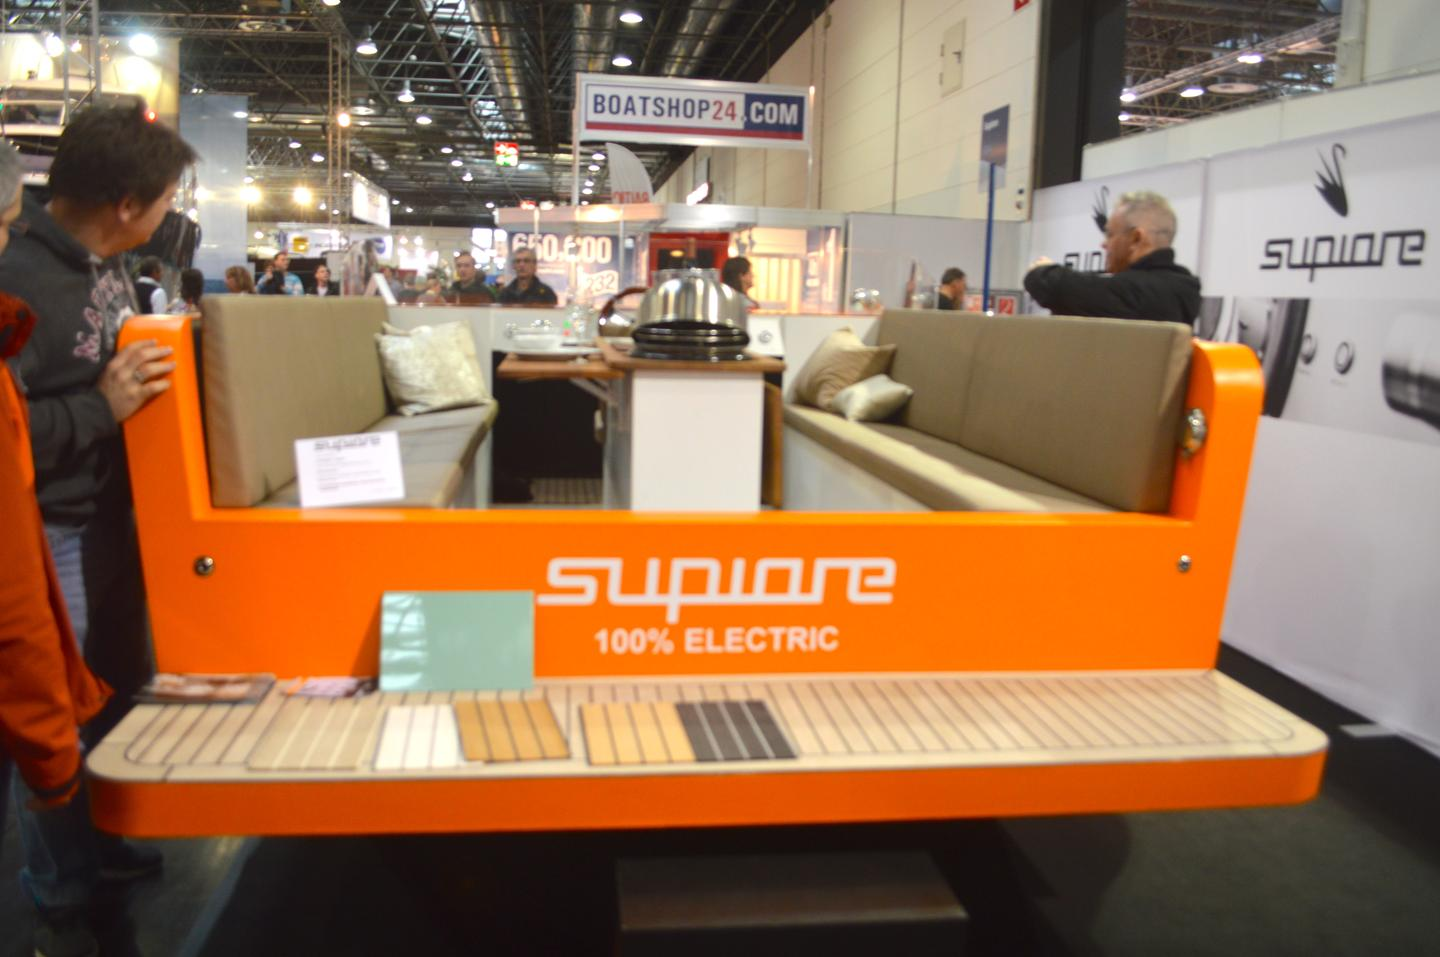 Supiore's Facebook page indicates that it added the rear deck for last week's Dusseldorf showing